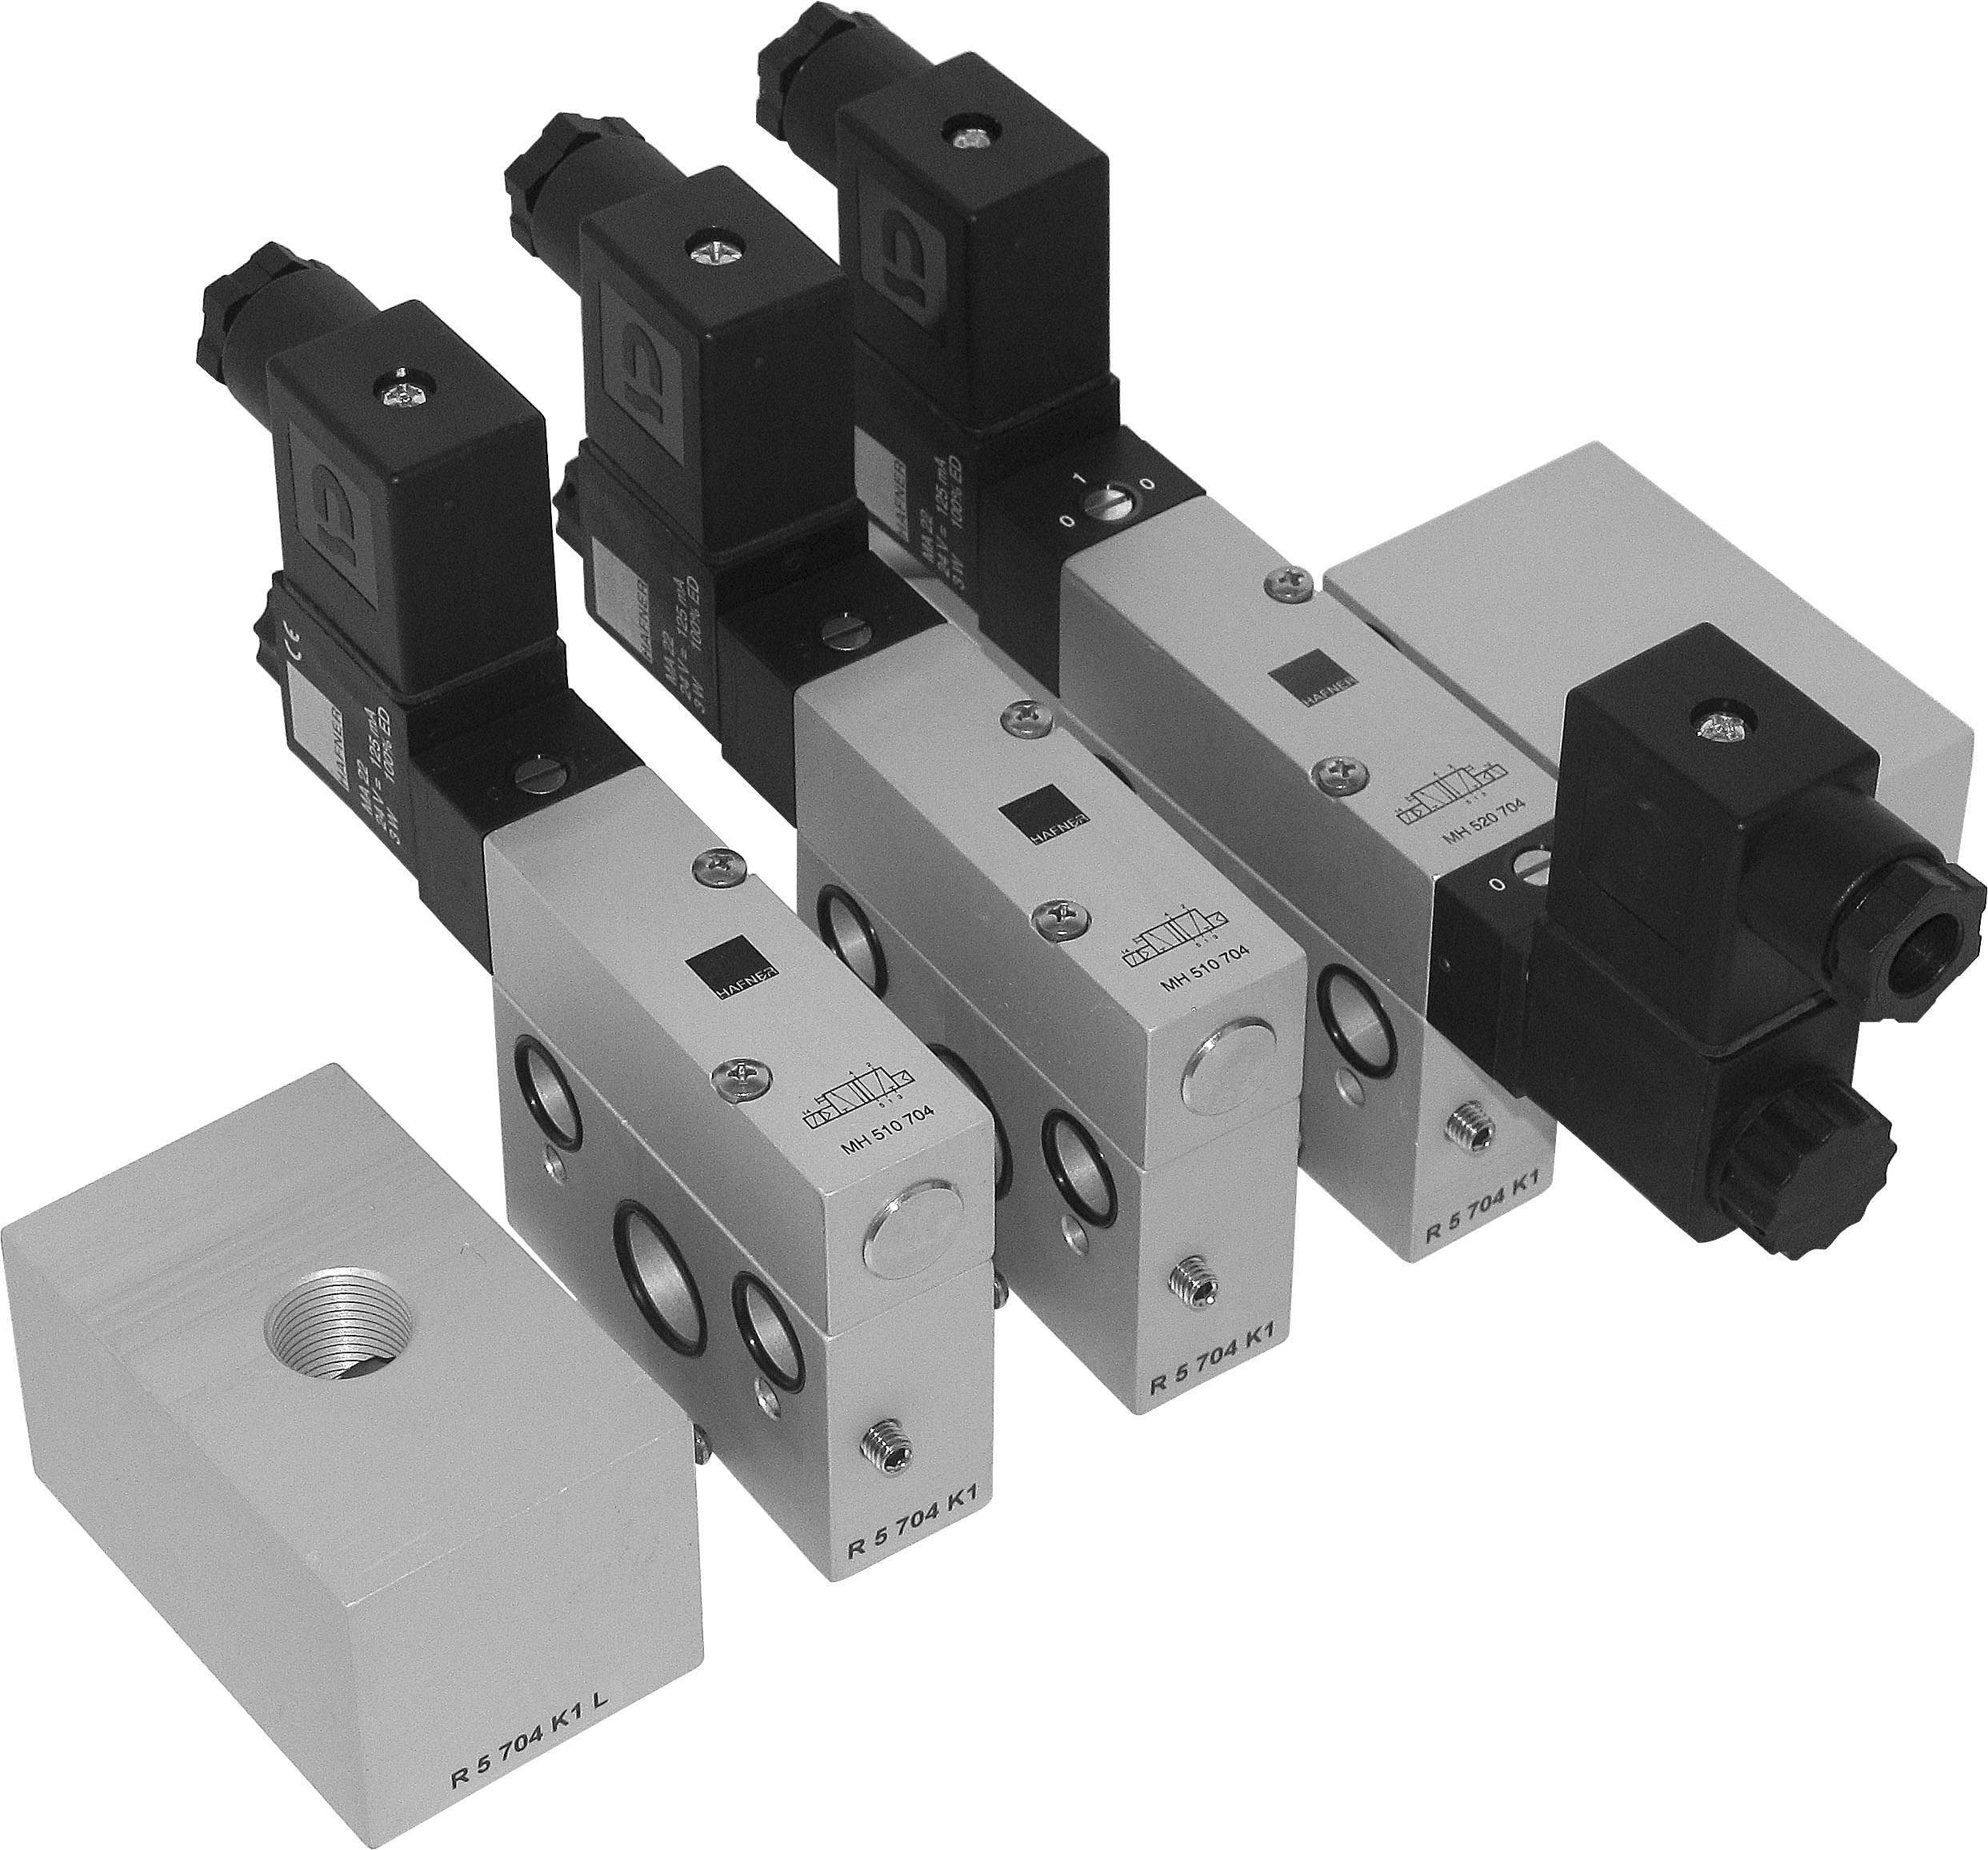 Modular Manifold for Control Cabinet Building